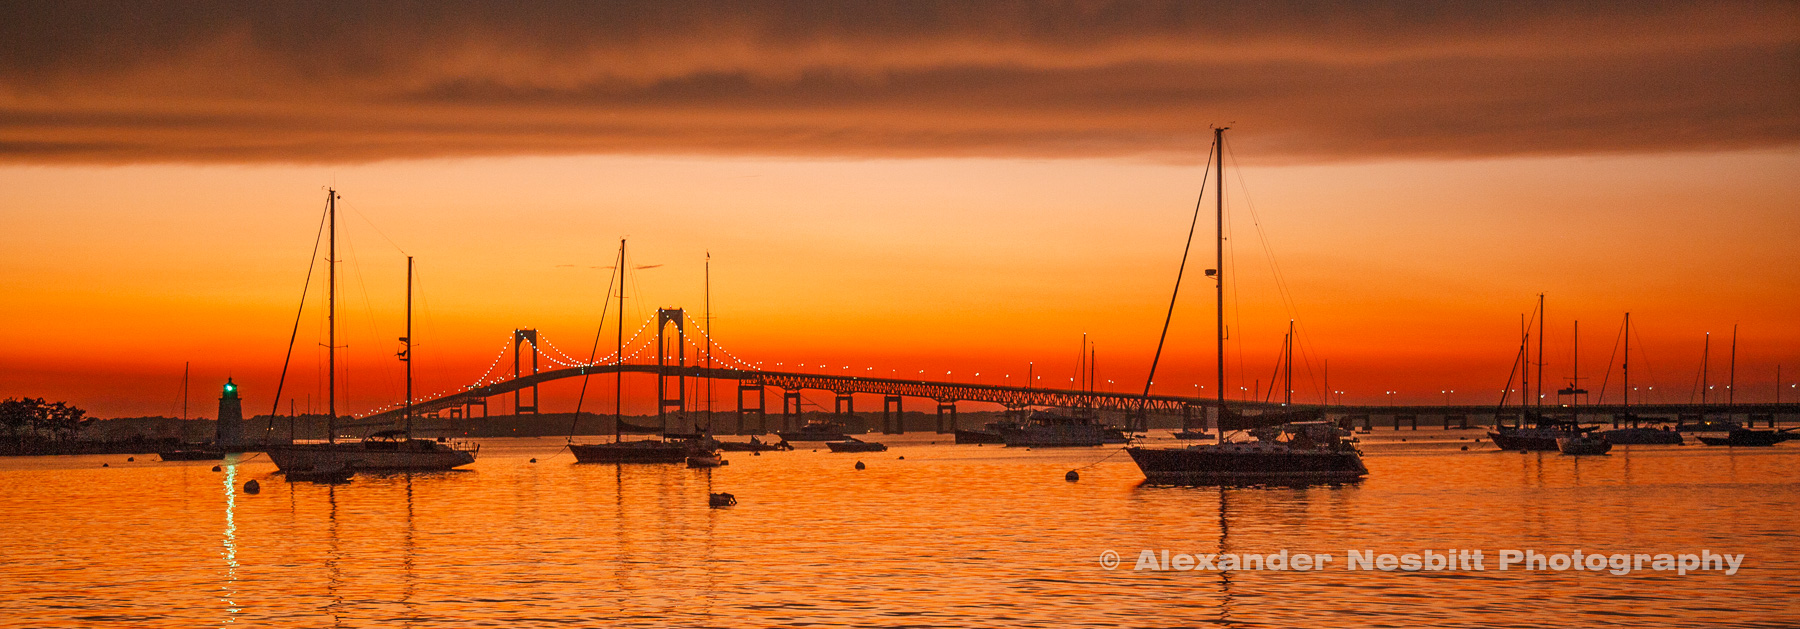 An intense sunset lasting well into dark glows over the Point moorings, the Goat Island Green Light and the Newport Bridge